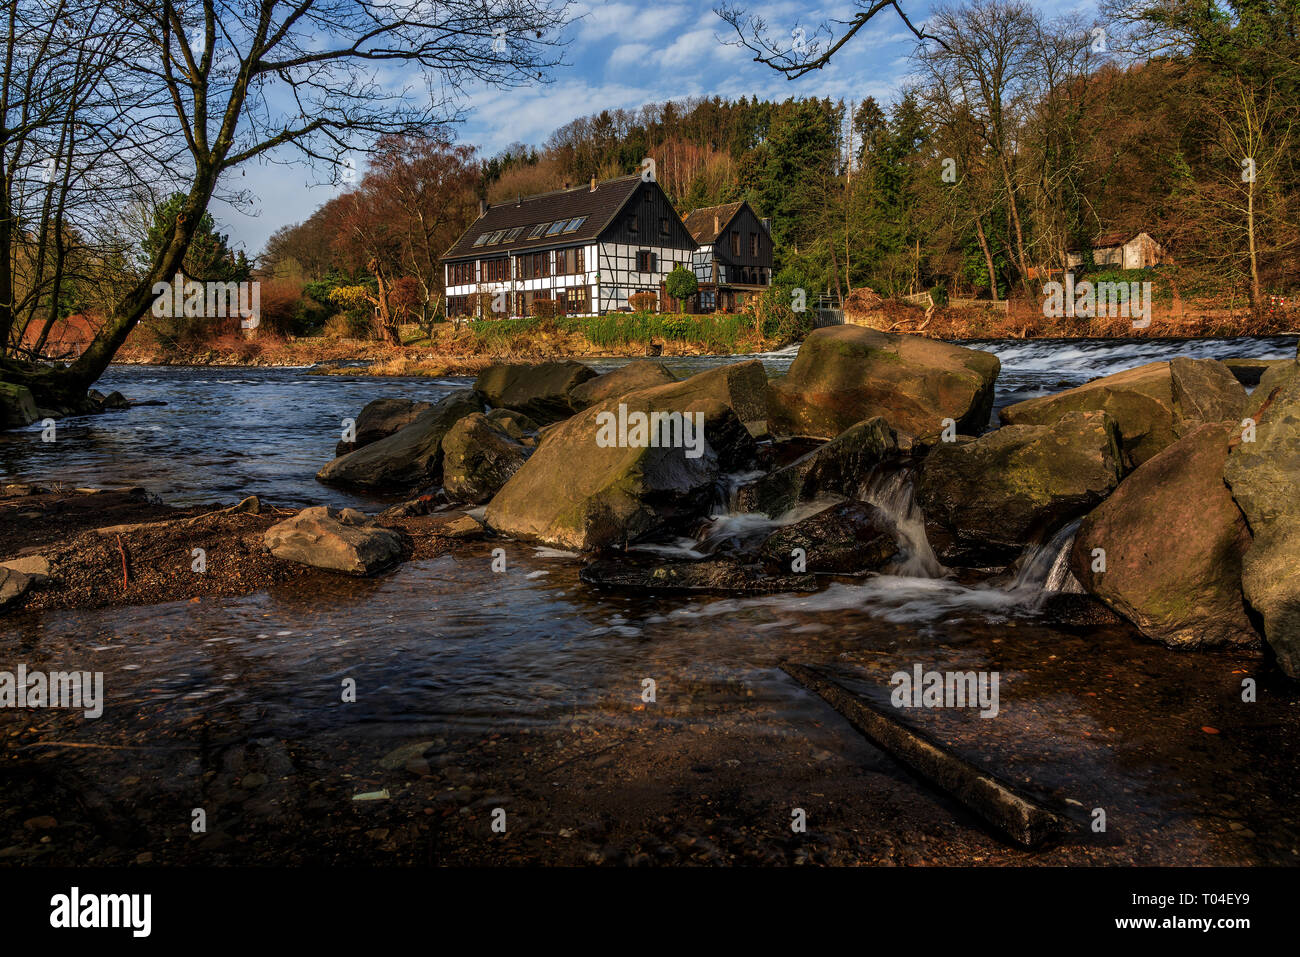 Half-timbered houses on the River Wupper, Viewpoint Wipperkotten. - Stock Image